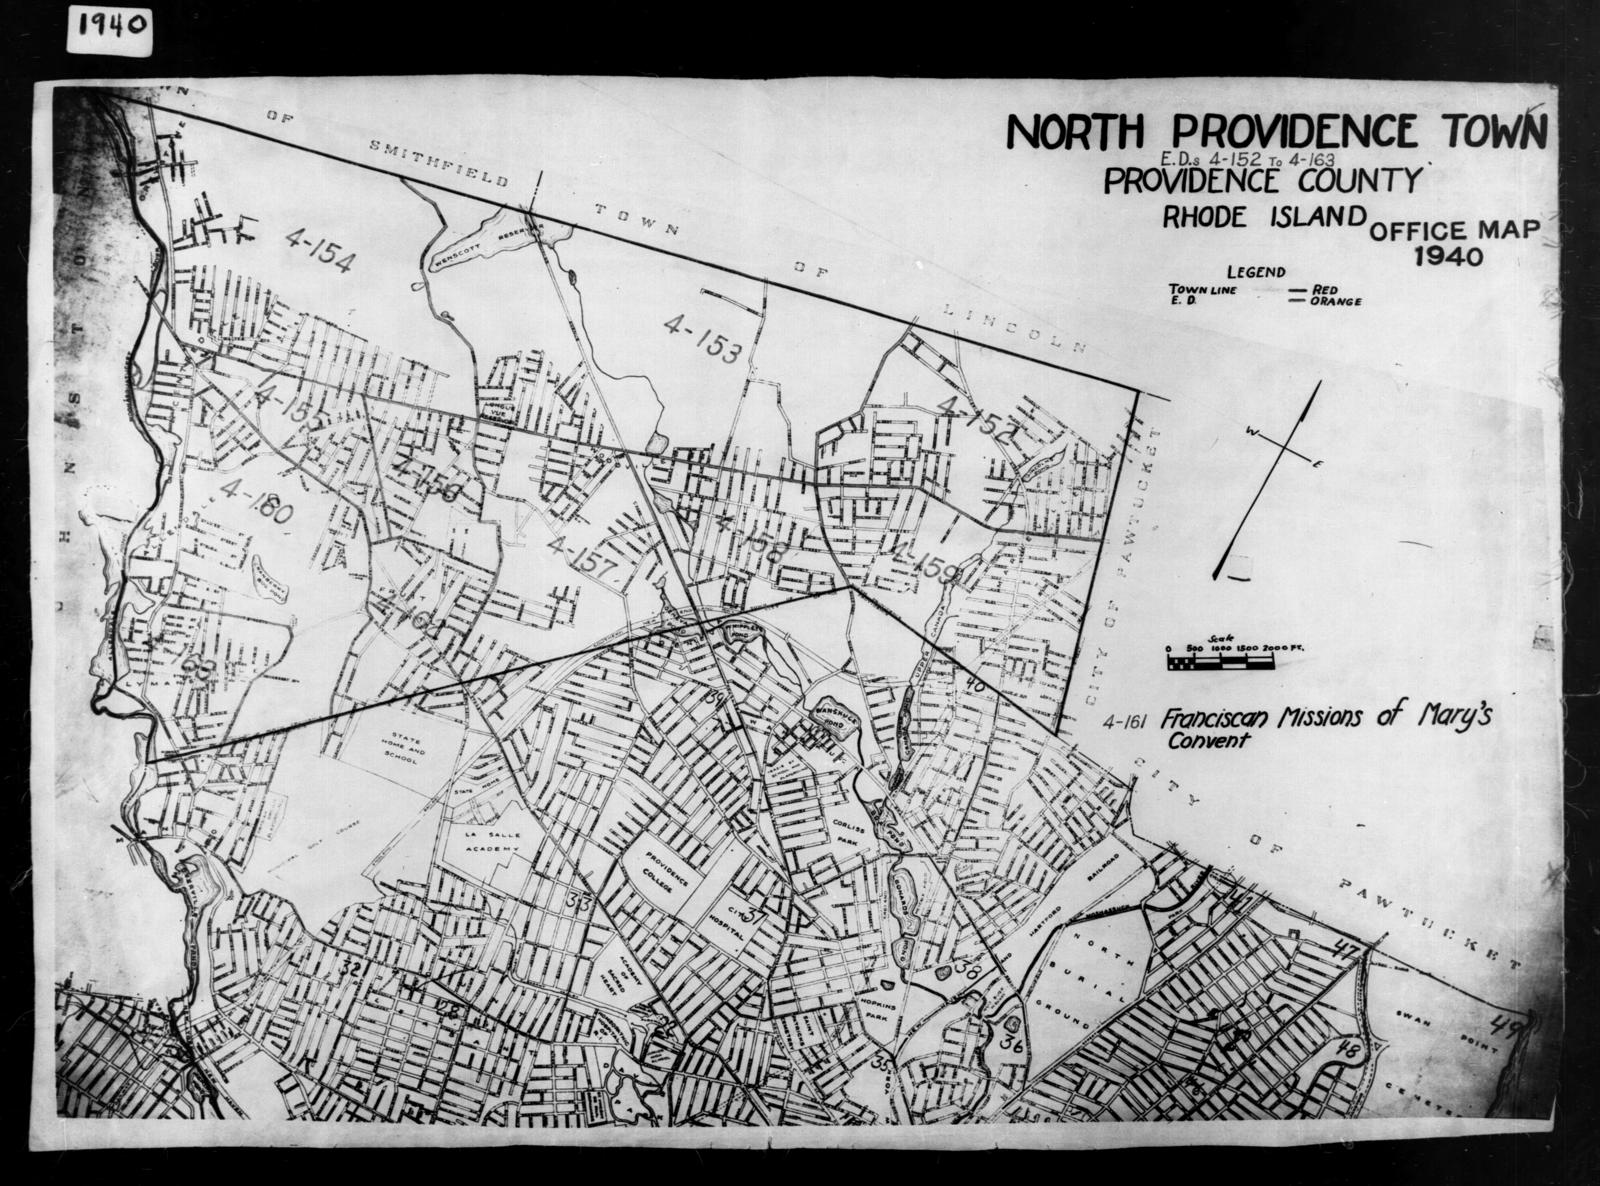 1940 Census Enumeration District Maps - Rhode Island - Providence County - North Providence - ED 4-152 - ED 4-163